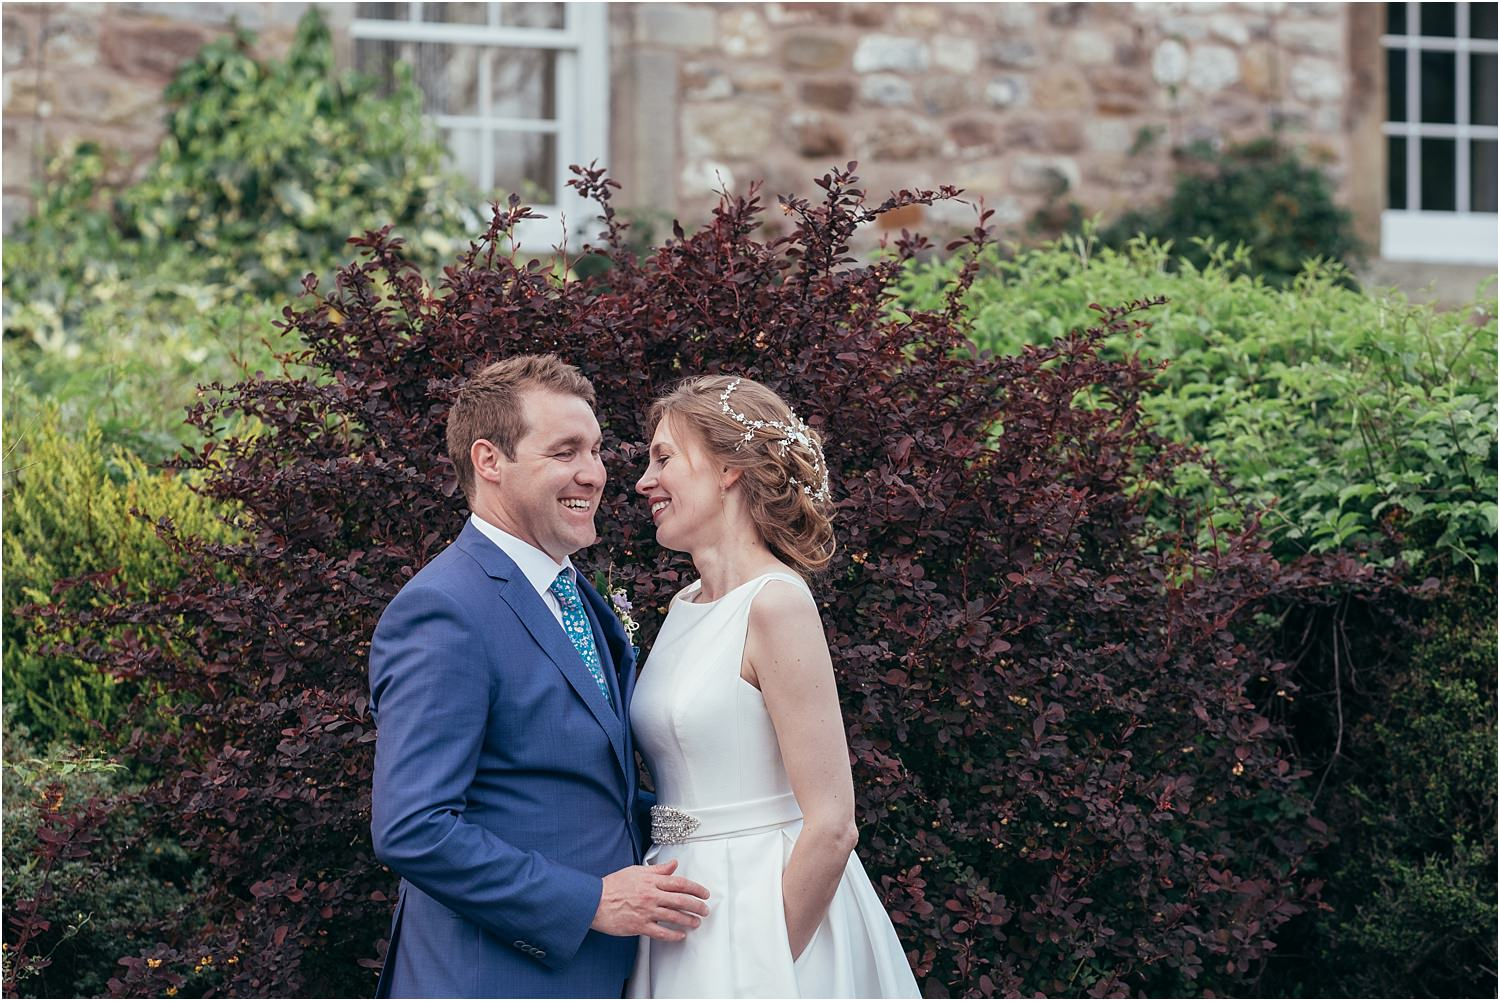 Bride and groom in gardens at the Inn at Whitewell in the Trough of Bowland